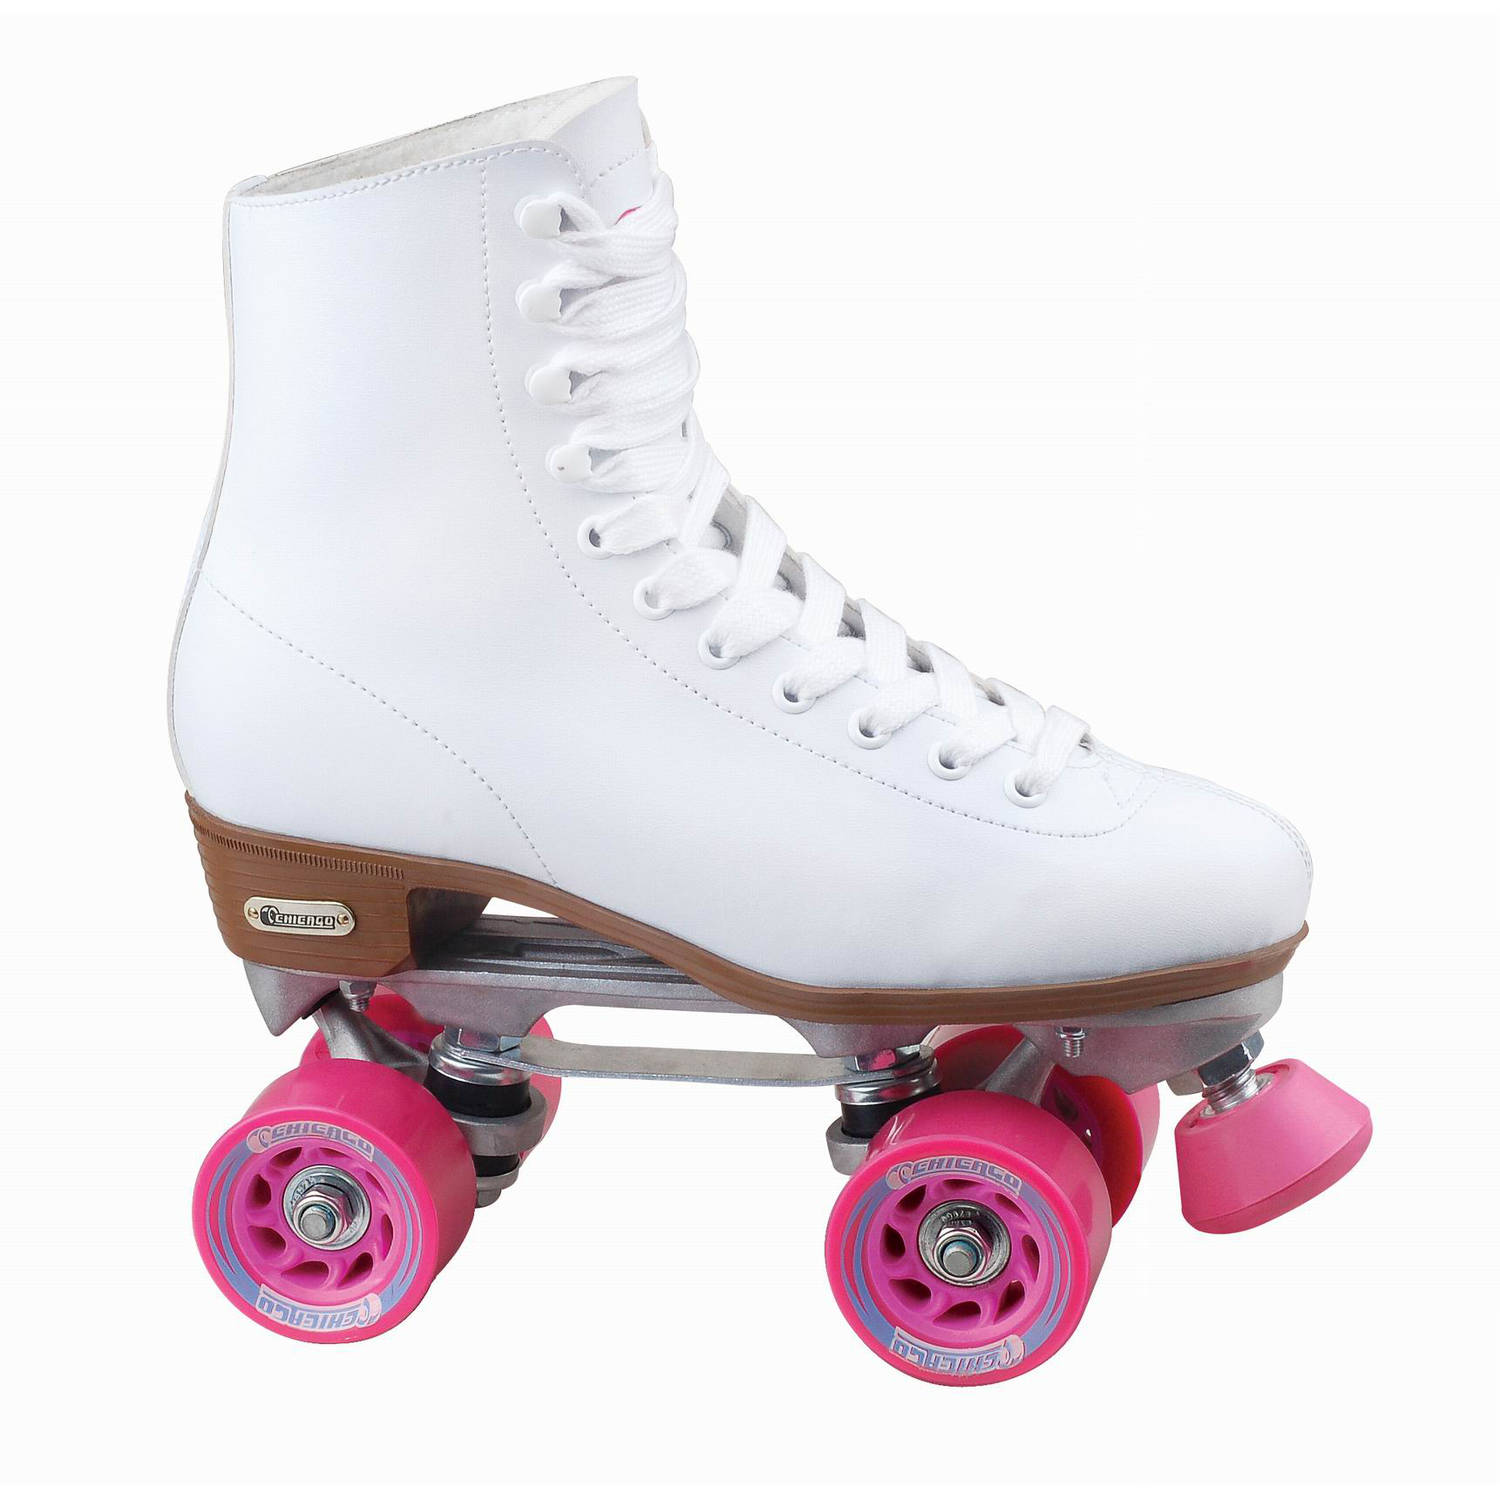 Chicago Ladies' Rink Skate